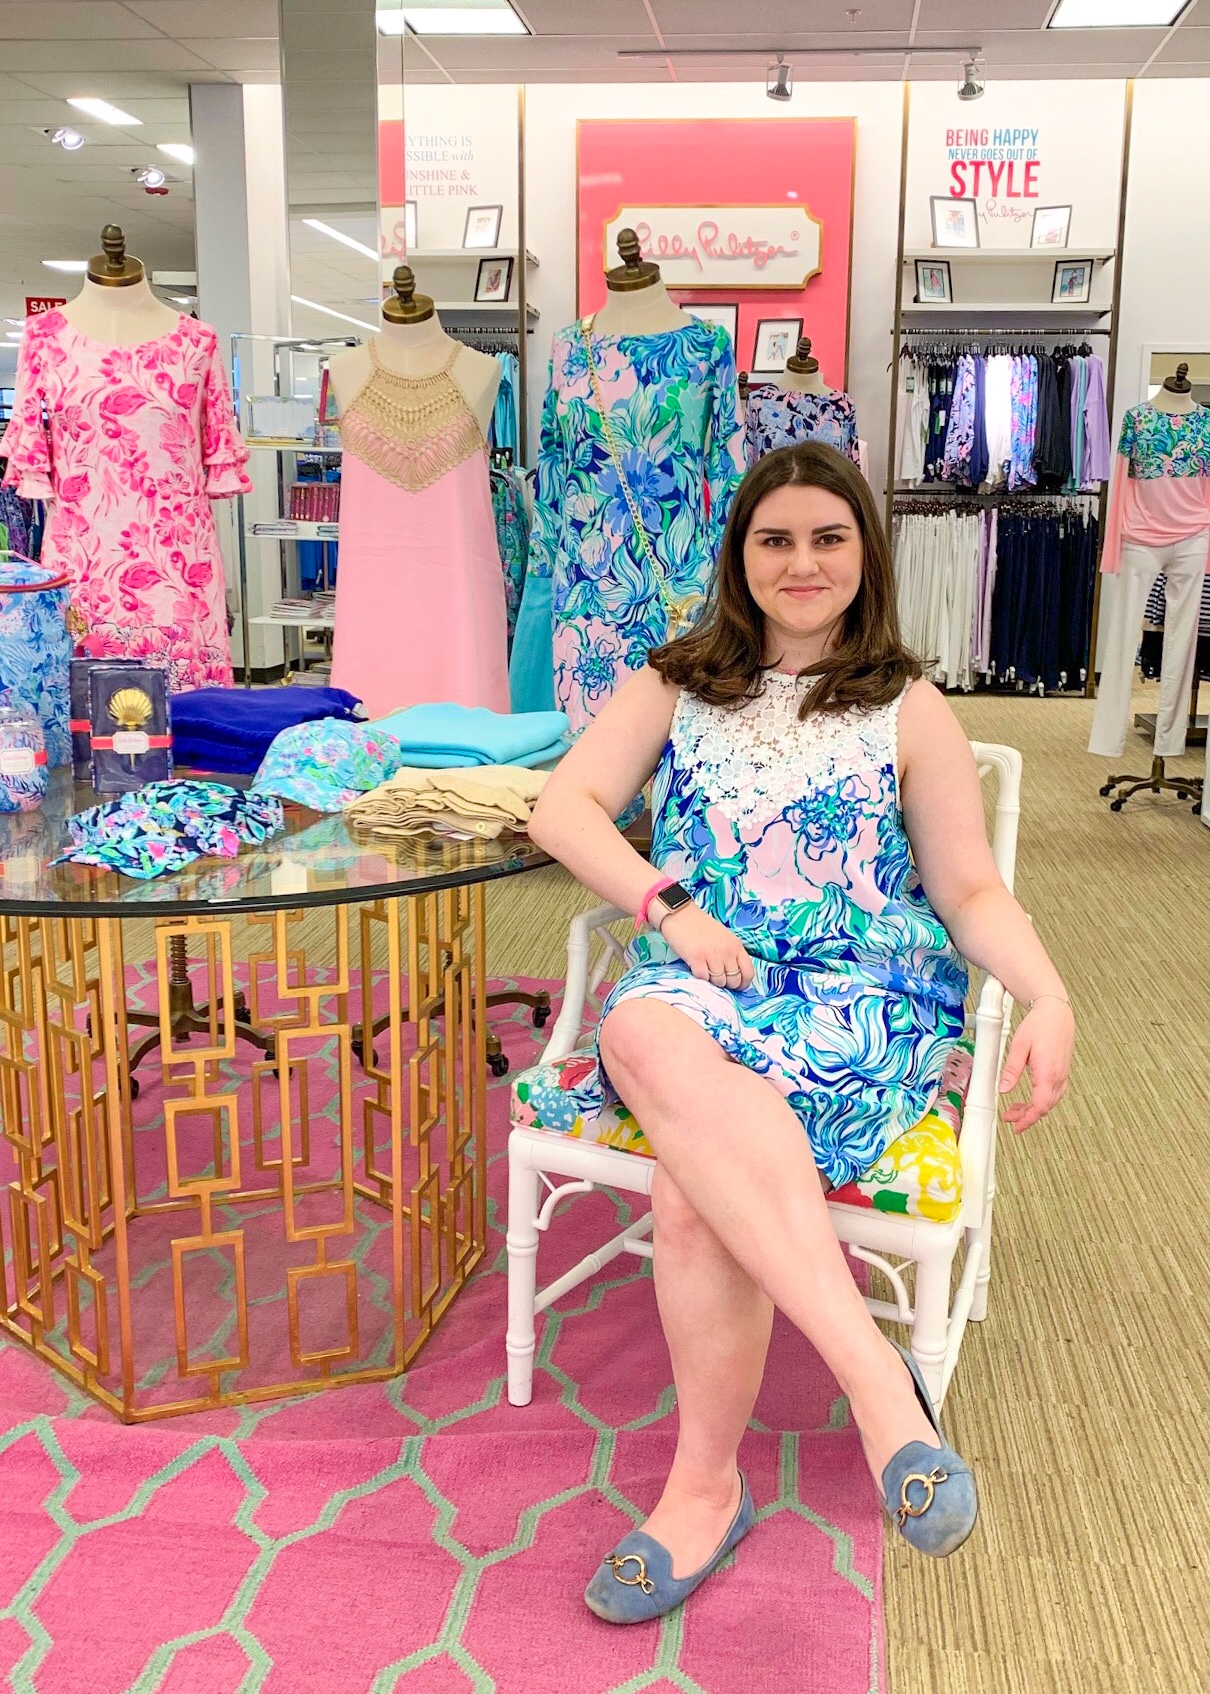 985f116245419 Lilly Pulitzer has new arrivals for Spring! I was asked by my local Lilly  store to model some of the new things